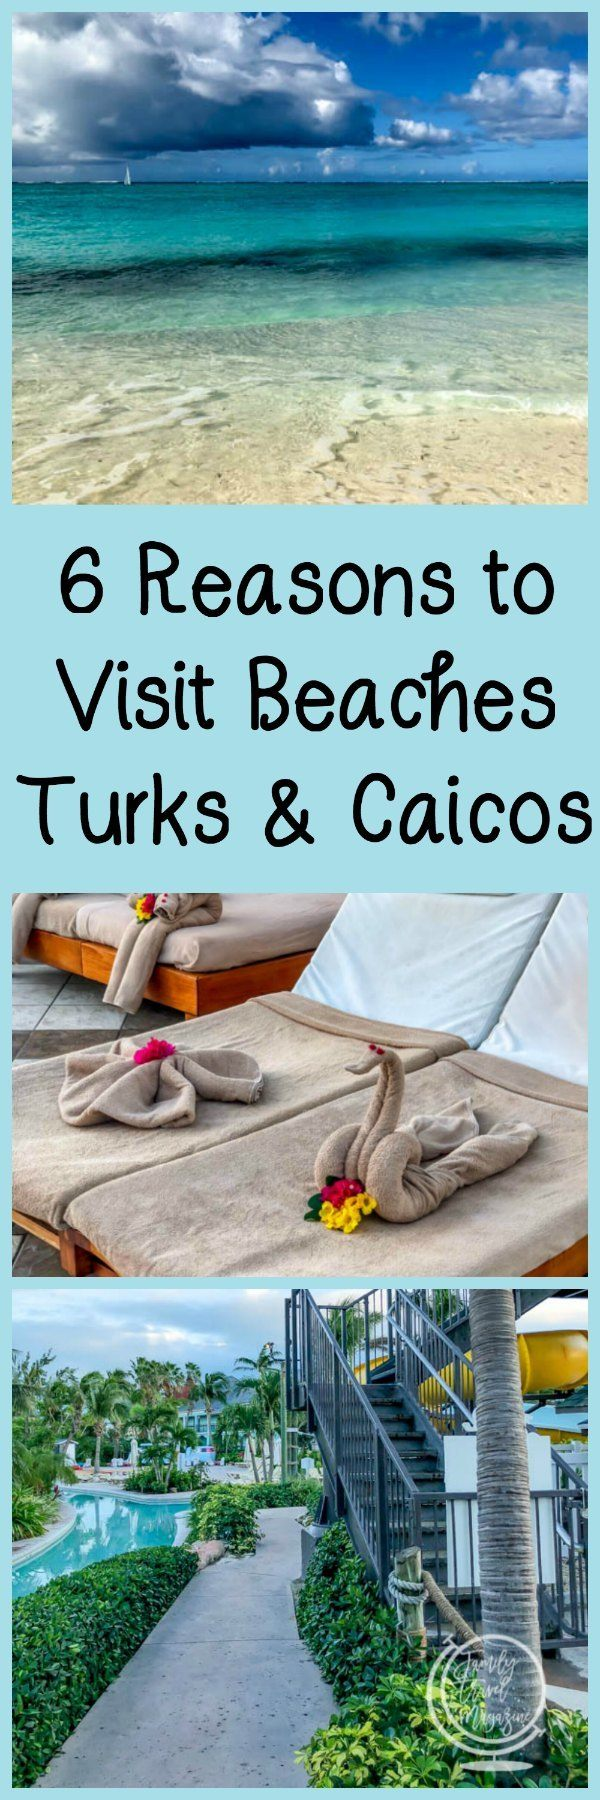 6 Reasons to Visit Beaches Turks and Caicos Resort, including beautiful beaches, delicious food, and fabulous service.